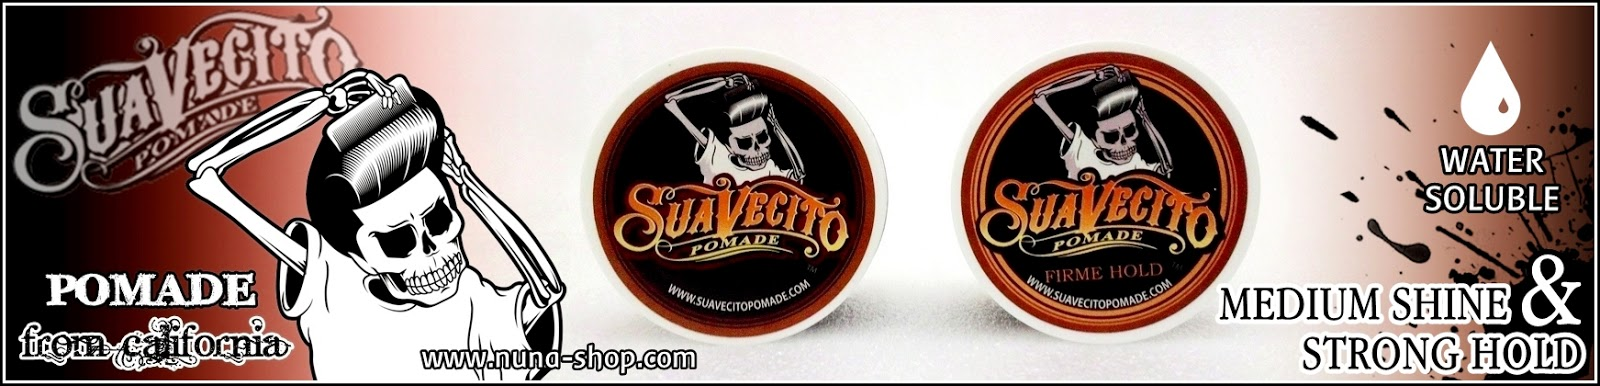 Suavecito Pomade - Strong Hold & Medium Shine Original USA